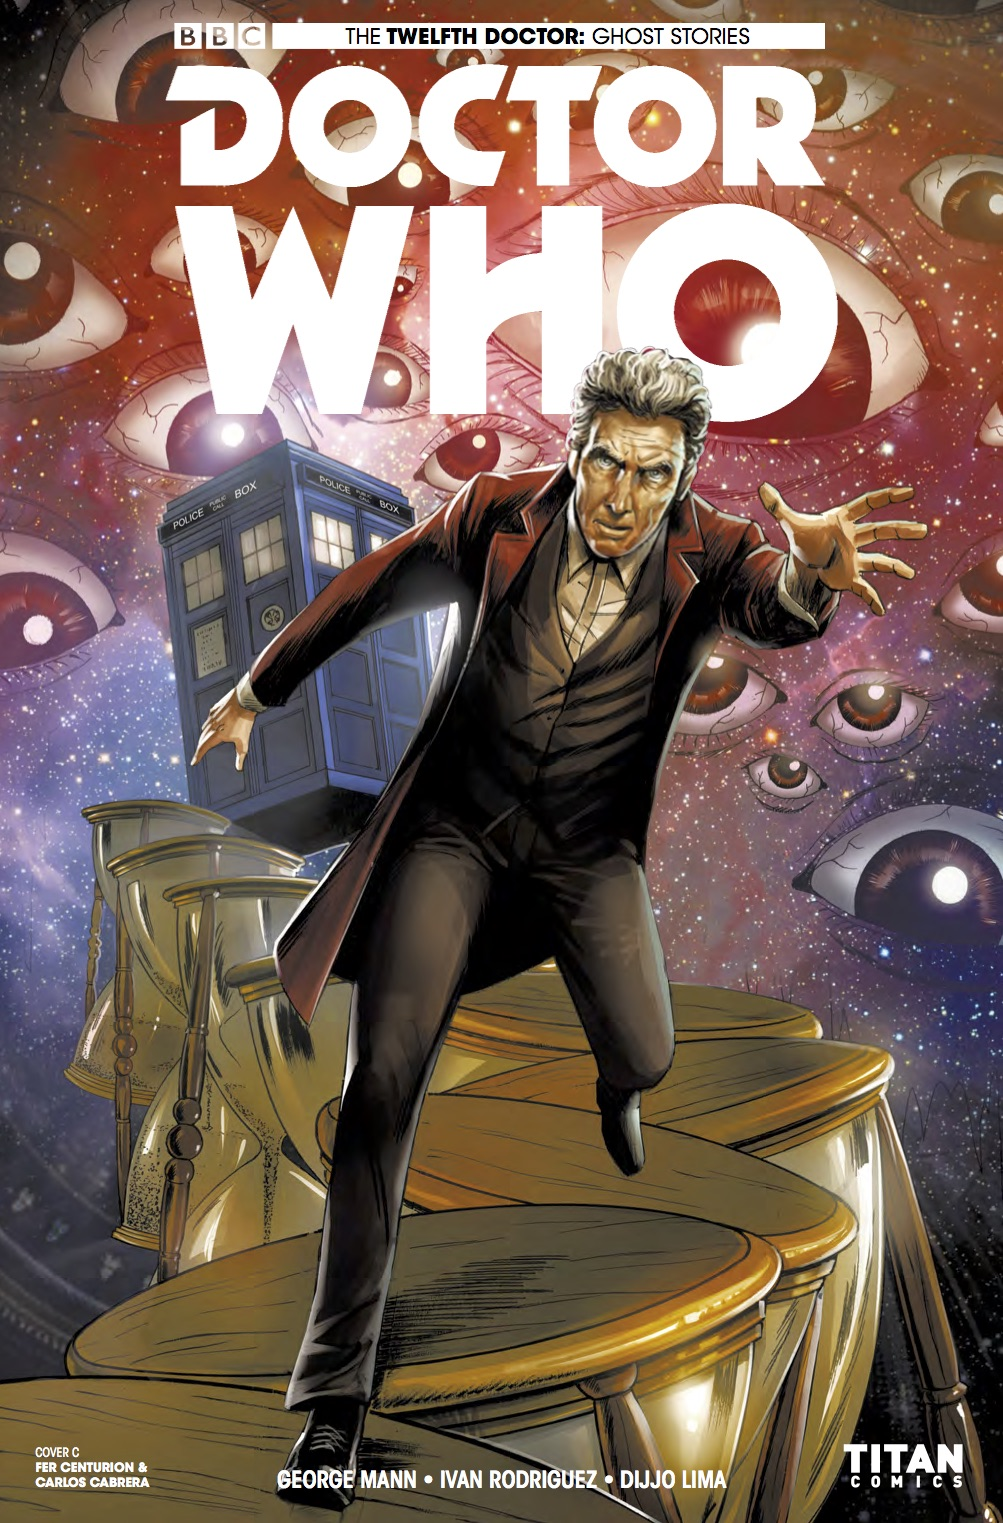 Doctor Who Ghost Stories #4 Cover C (Credit: Titan / Fer Centurion & Carlos Cabrera)